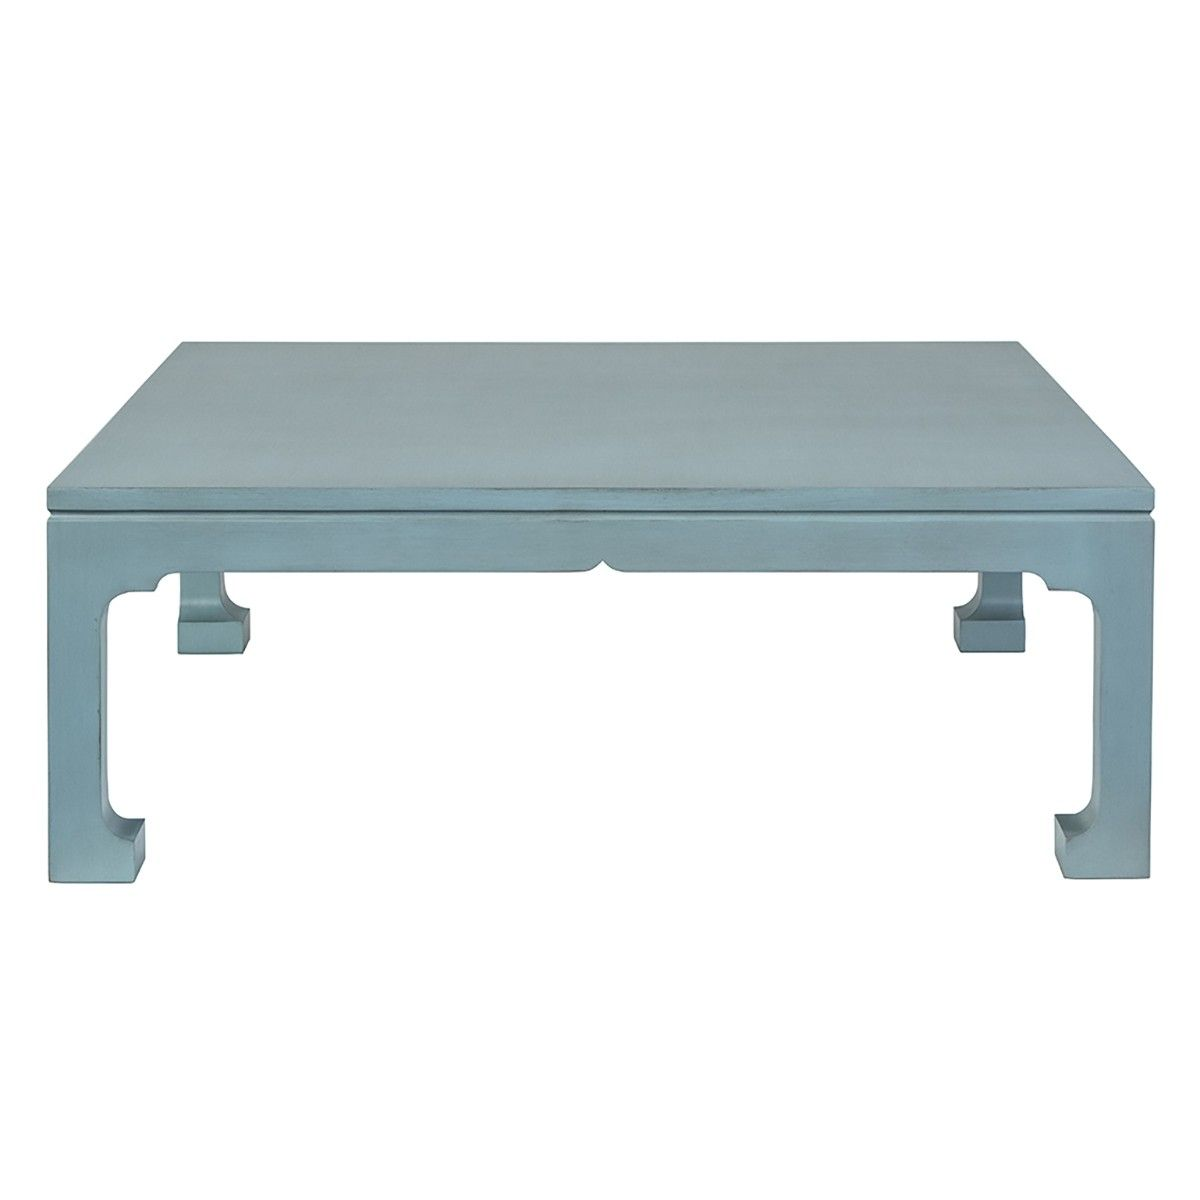 Redford House Furniture Morris Square Coffee Table | Candelabra, Inc.